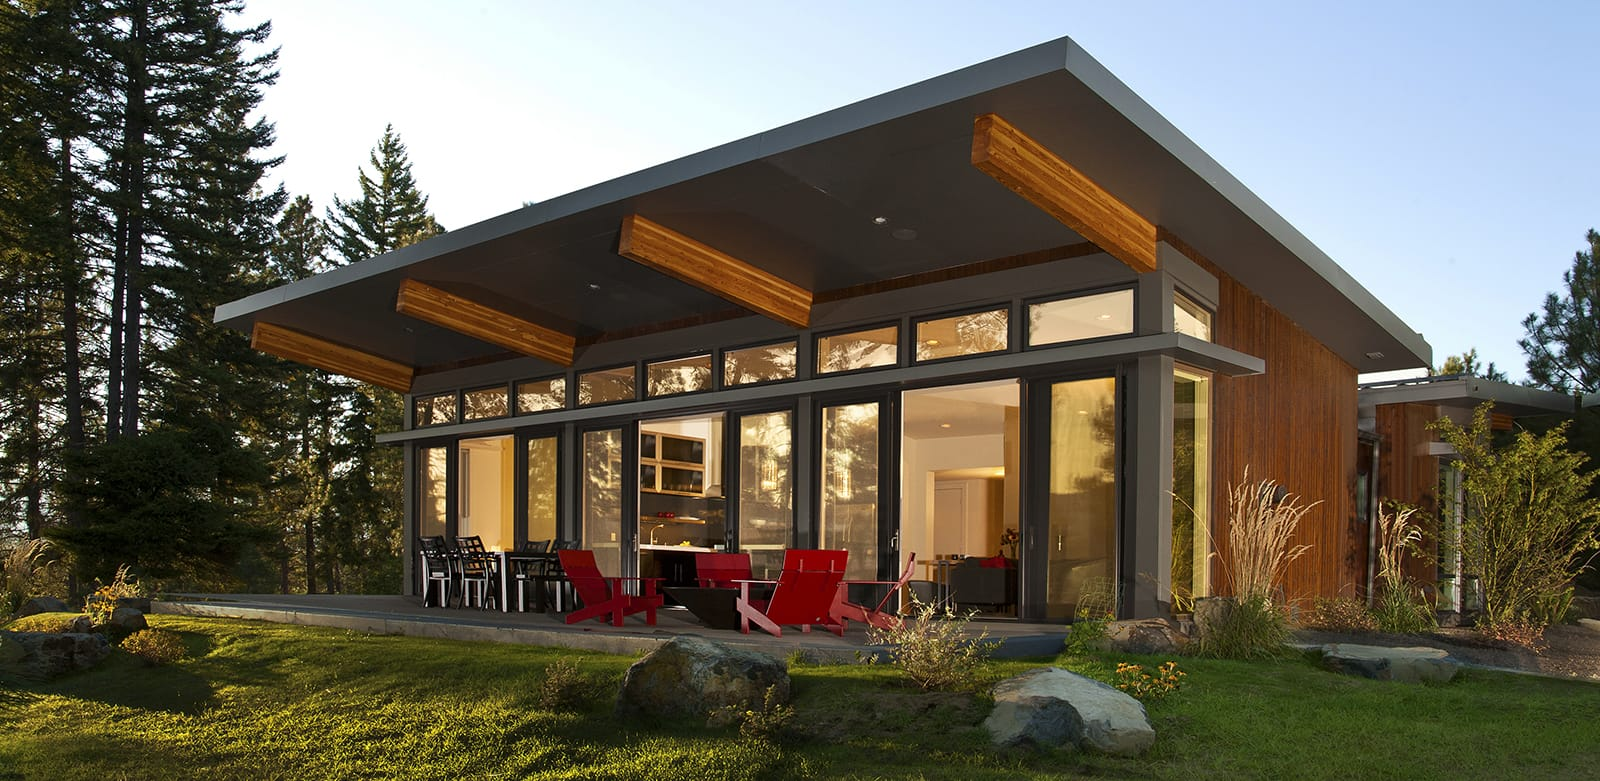 The 9 Best Modular Home Builders On The Market Better